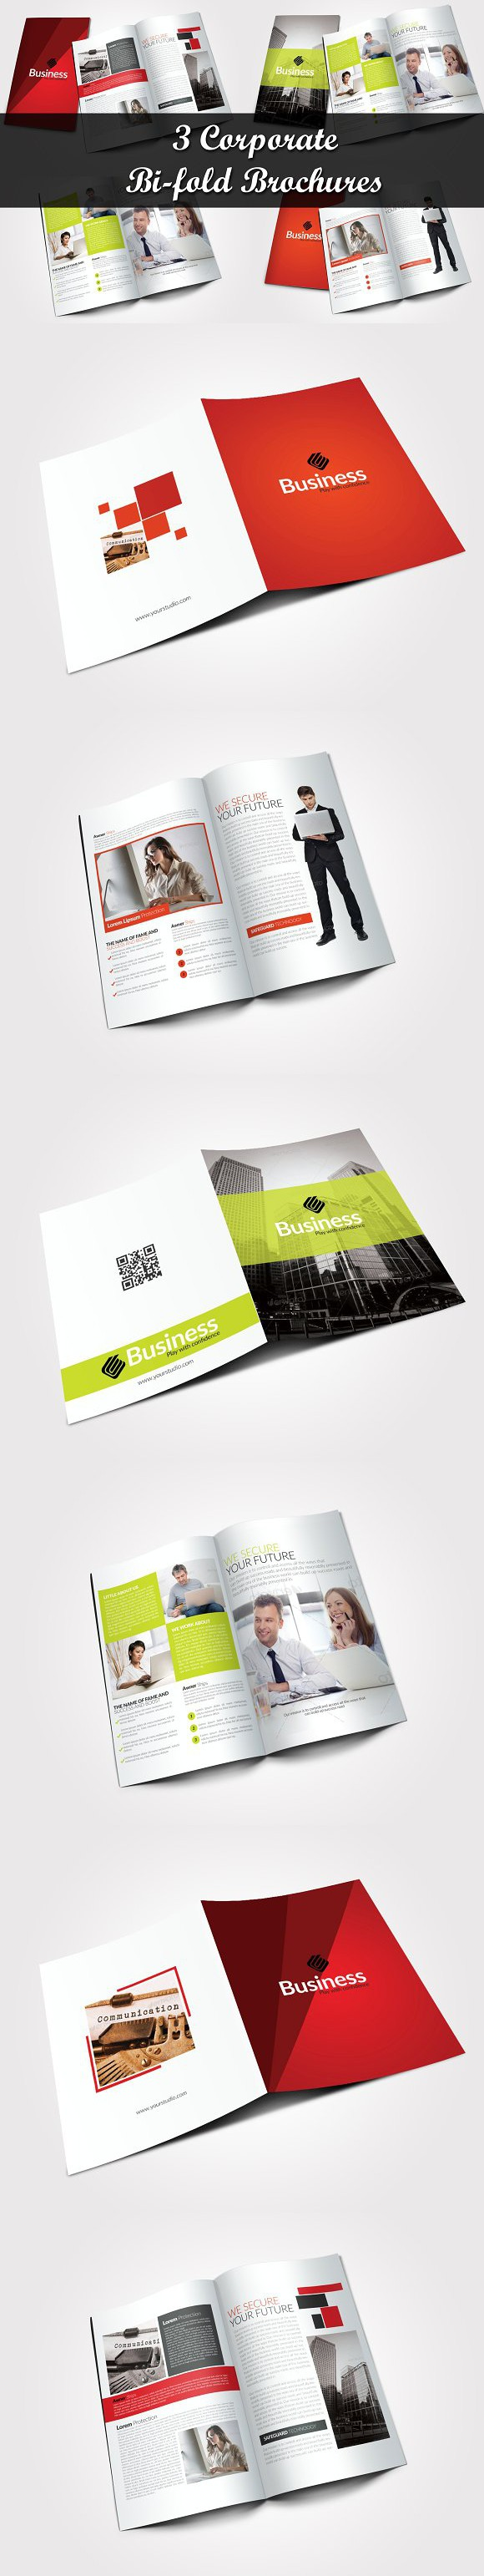 3 corporate bi fold brochure bundle creative business card 3 corporate bi fold brochure bundle creative business card templates wajeb